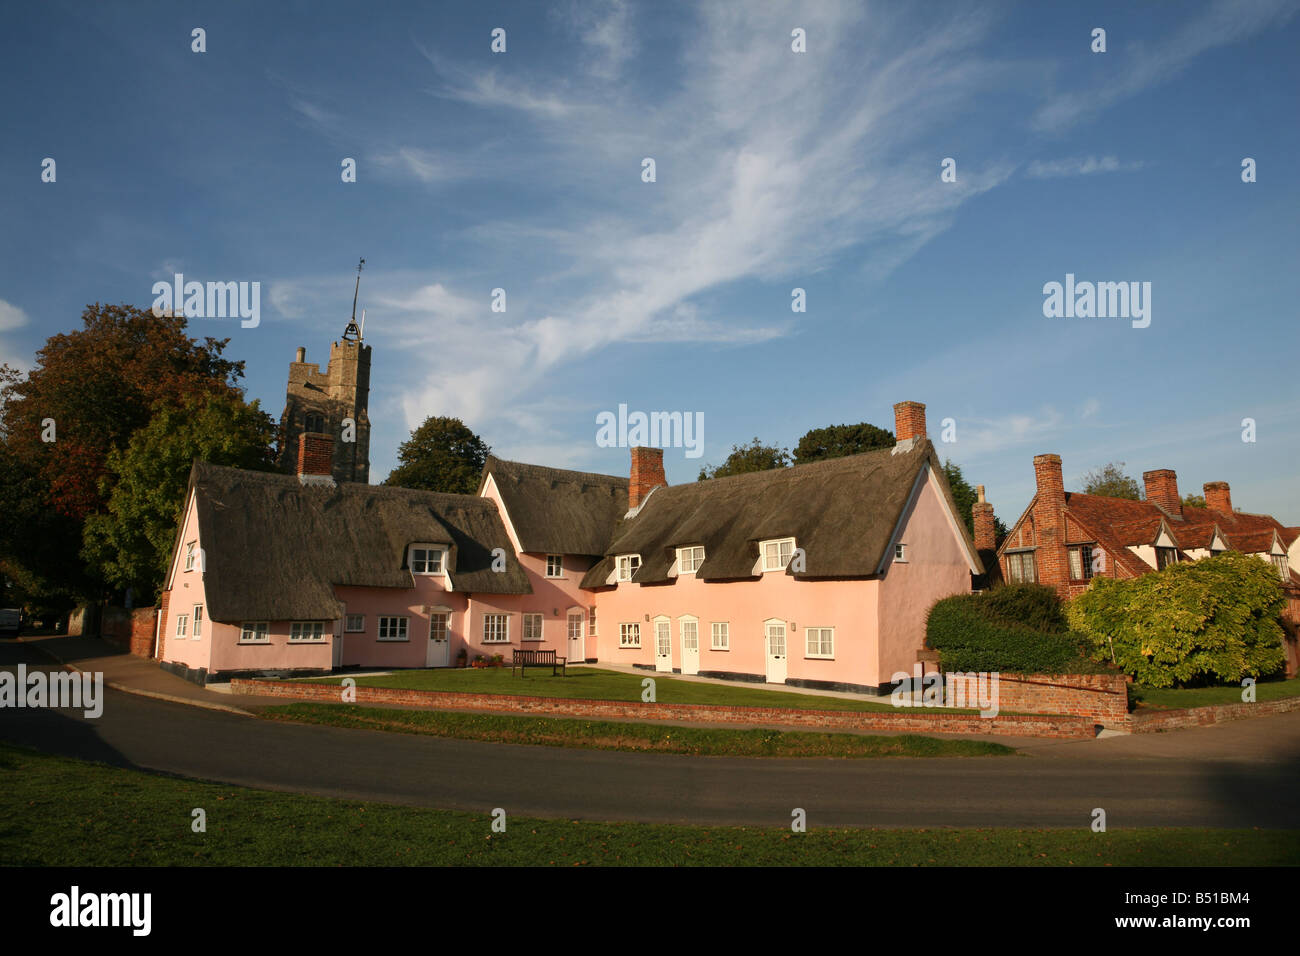 Cavendish in Suffolk showing traditional pink thatched cottages and village green - Stock Image